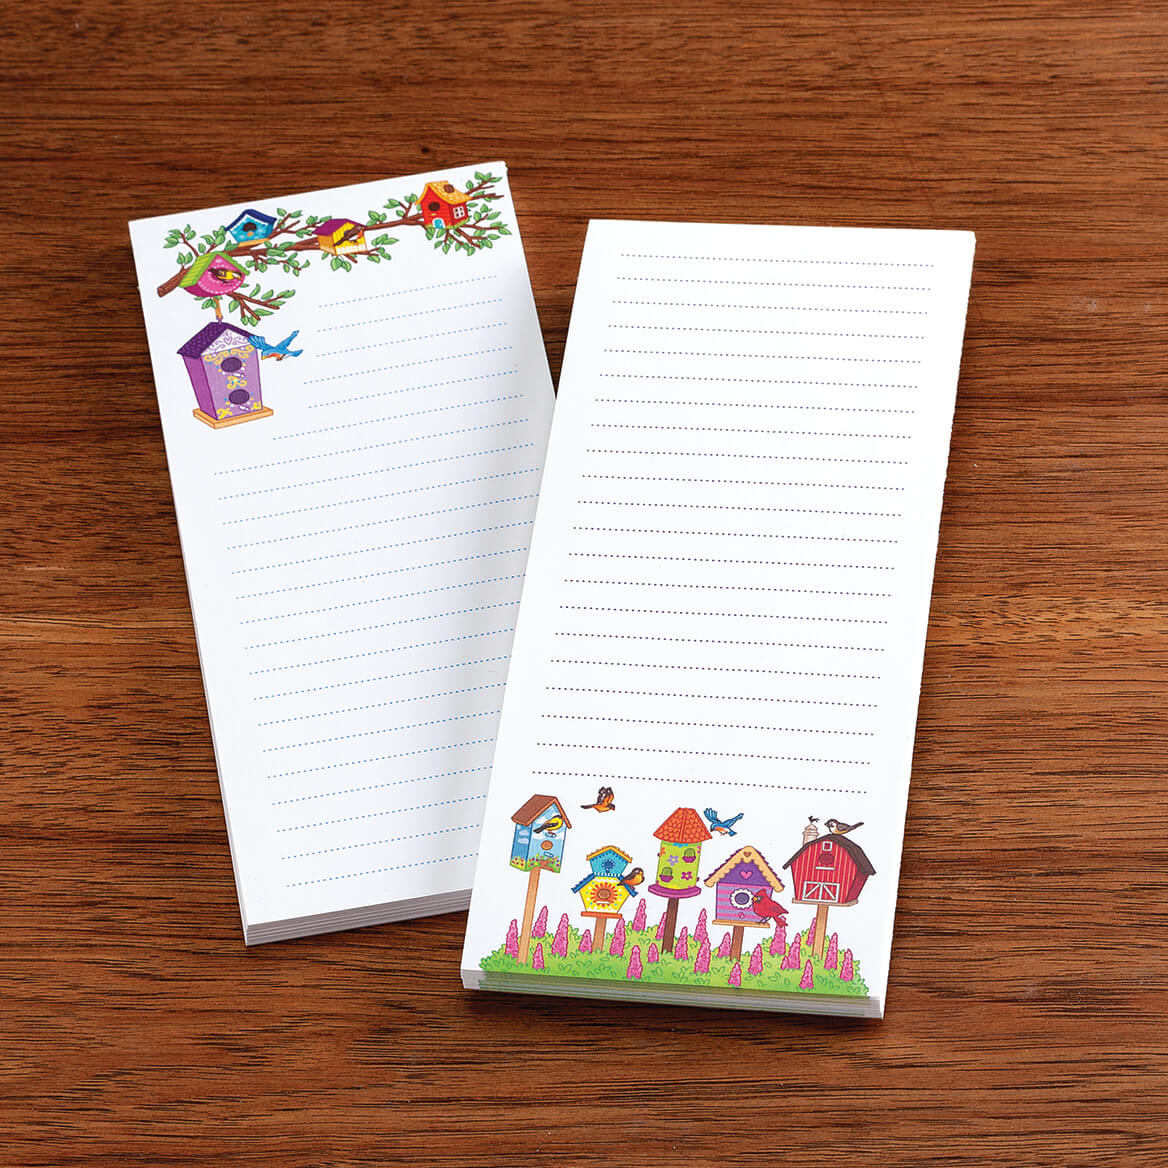 Bird House Note Pads set of 2-370635